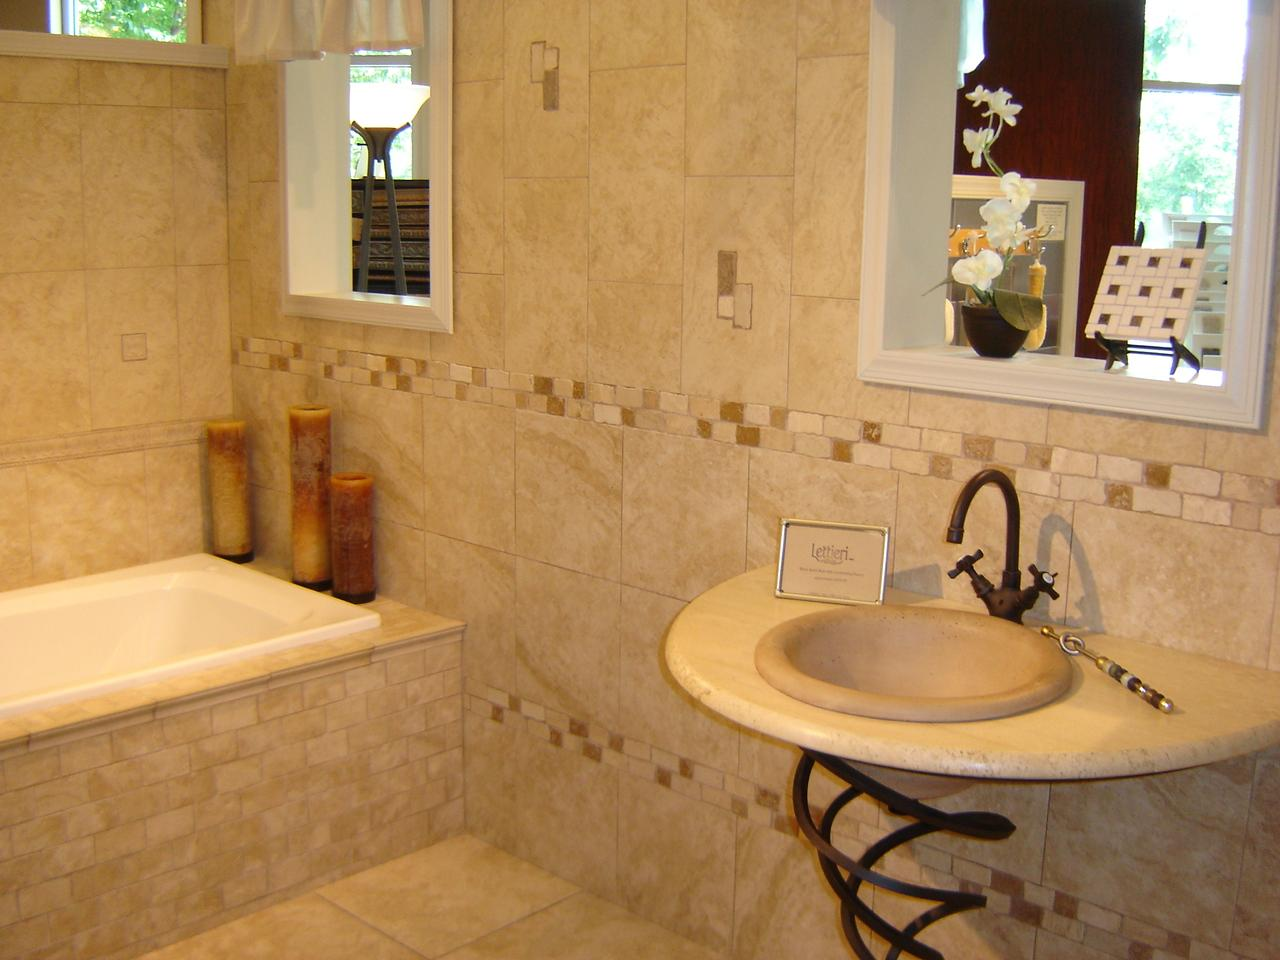 Outstanding Bathroom Tile Designs 1280 x 960 · 120 kB · jpeg